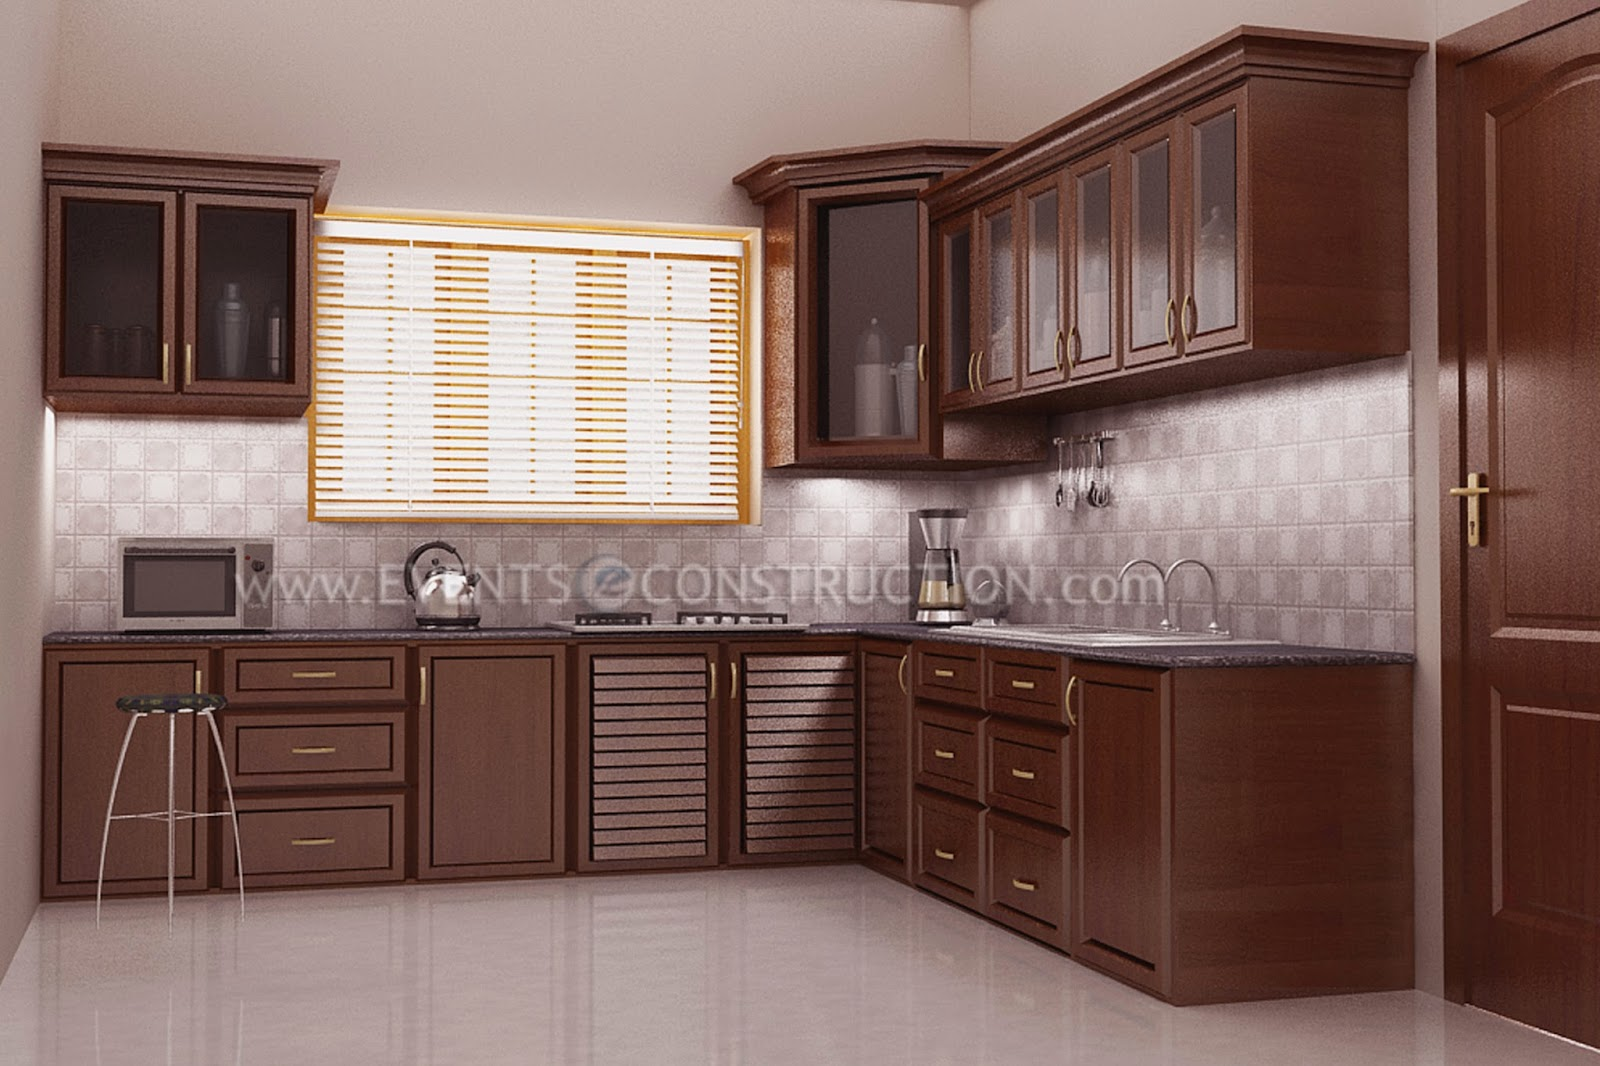 Evens construction pvt ltd kitchen design with wooden for Interior designs for bedroom cupboards